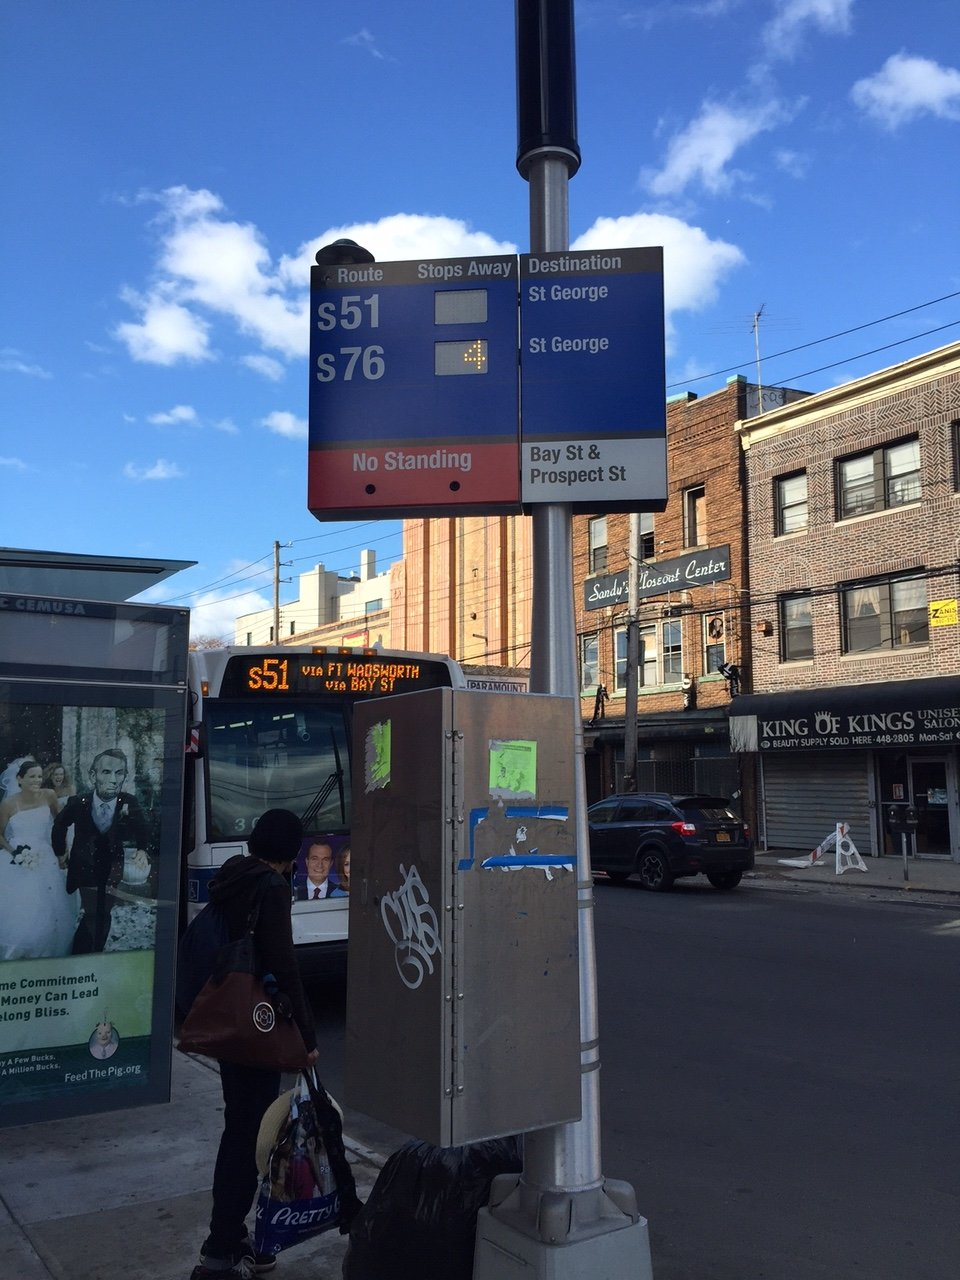 Project team wins award for N.Y. bus time displays